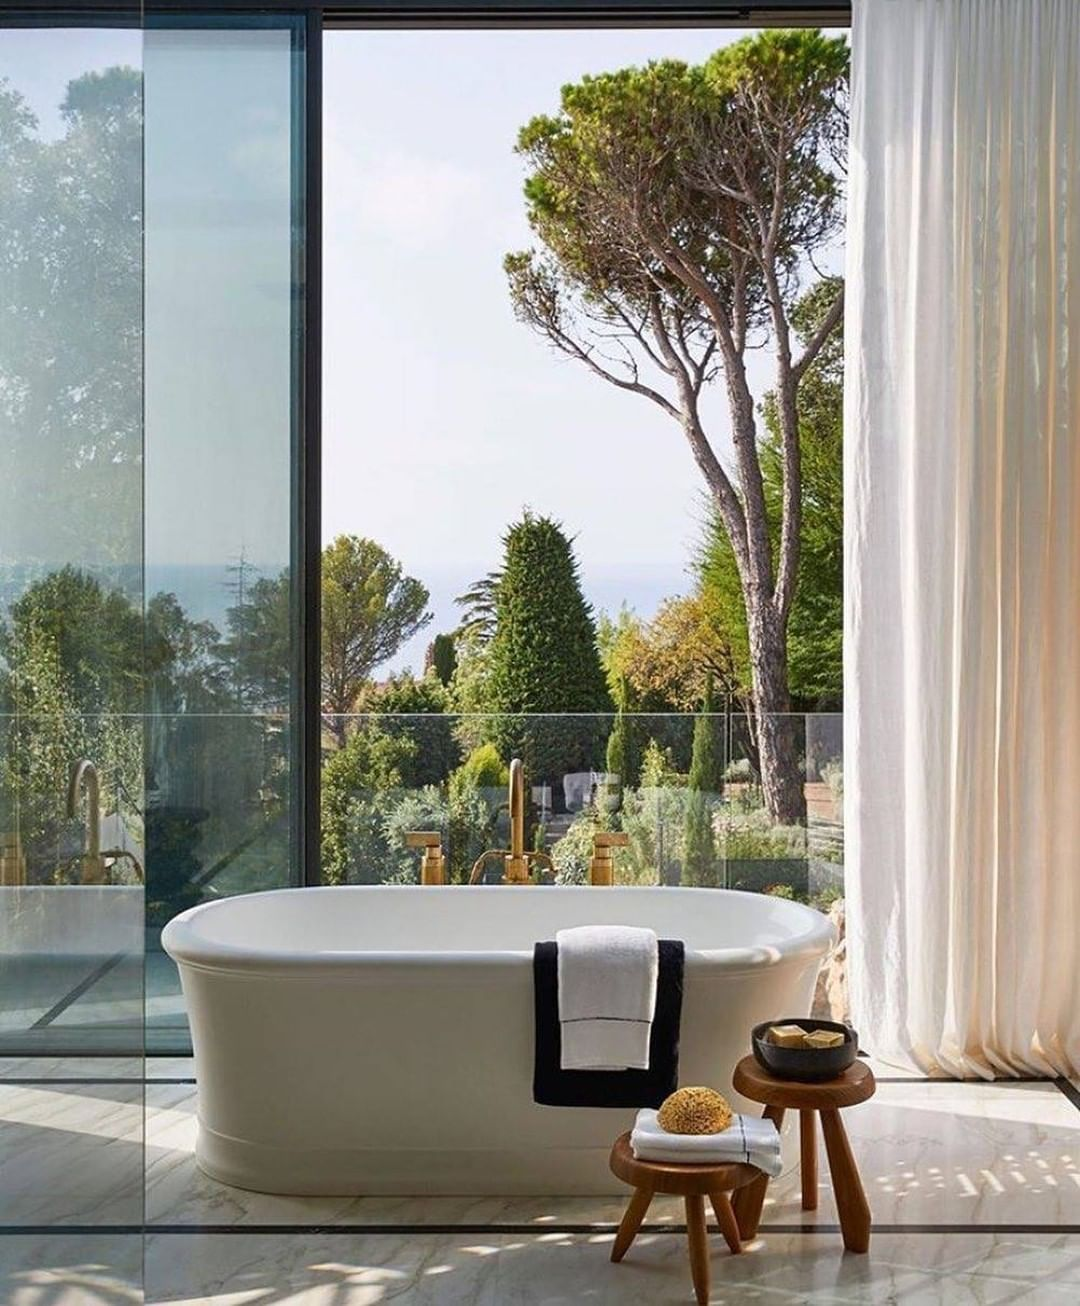 Bathroom With a View, bathroom, view, design, bathtub, maison valentina, bathroom  Bathroom With a View: 7 Captivating Designs Humbert Payer